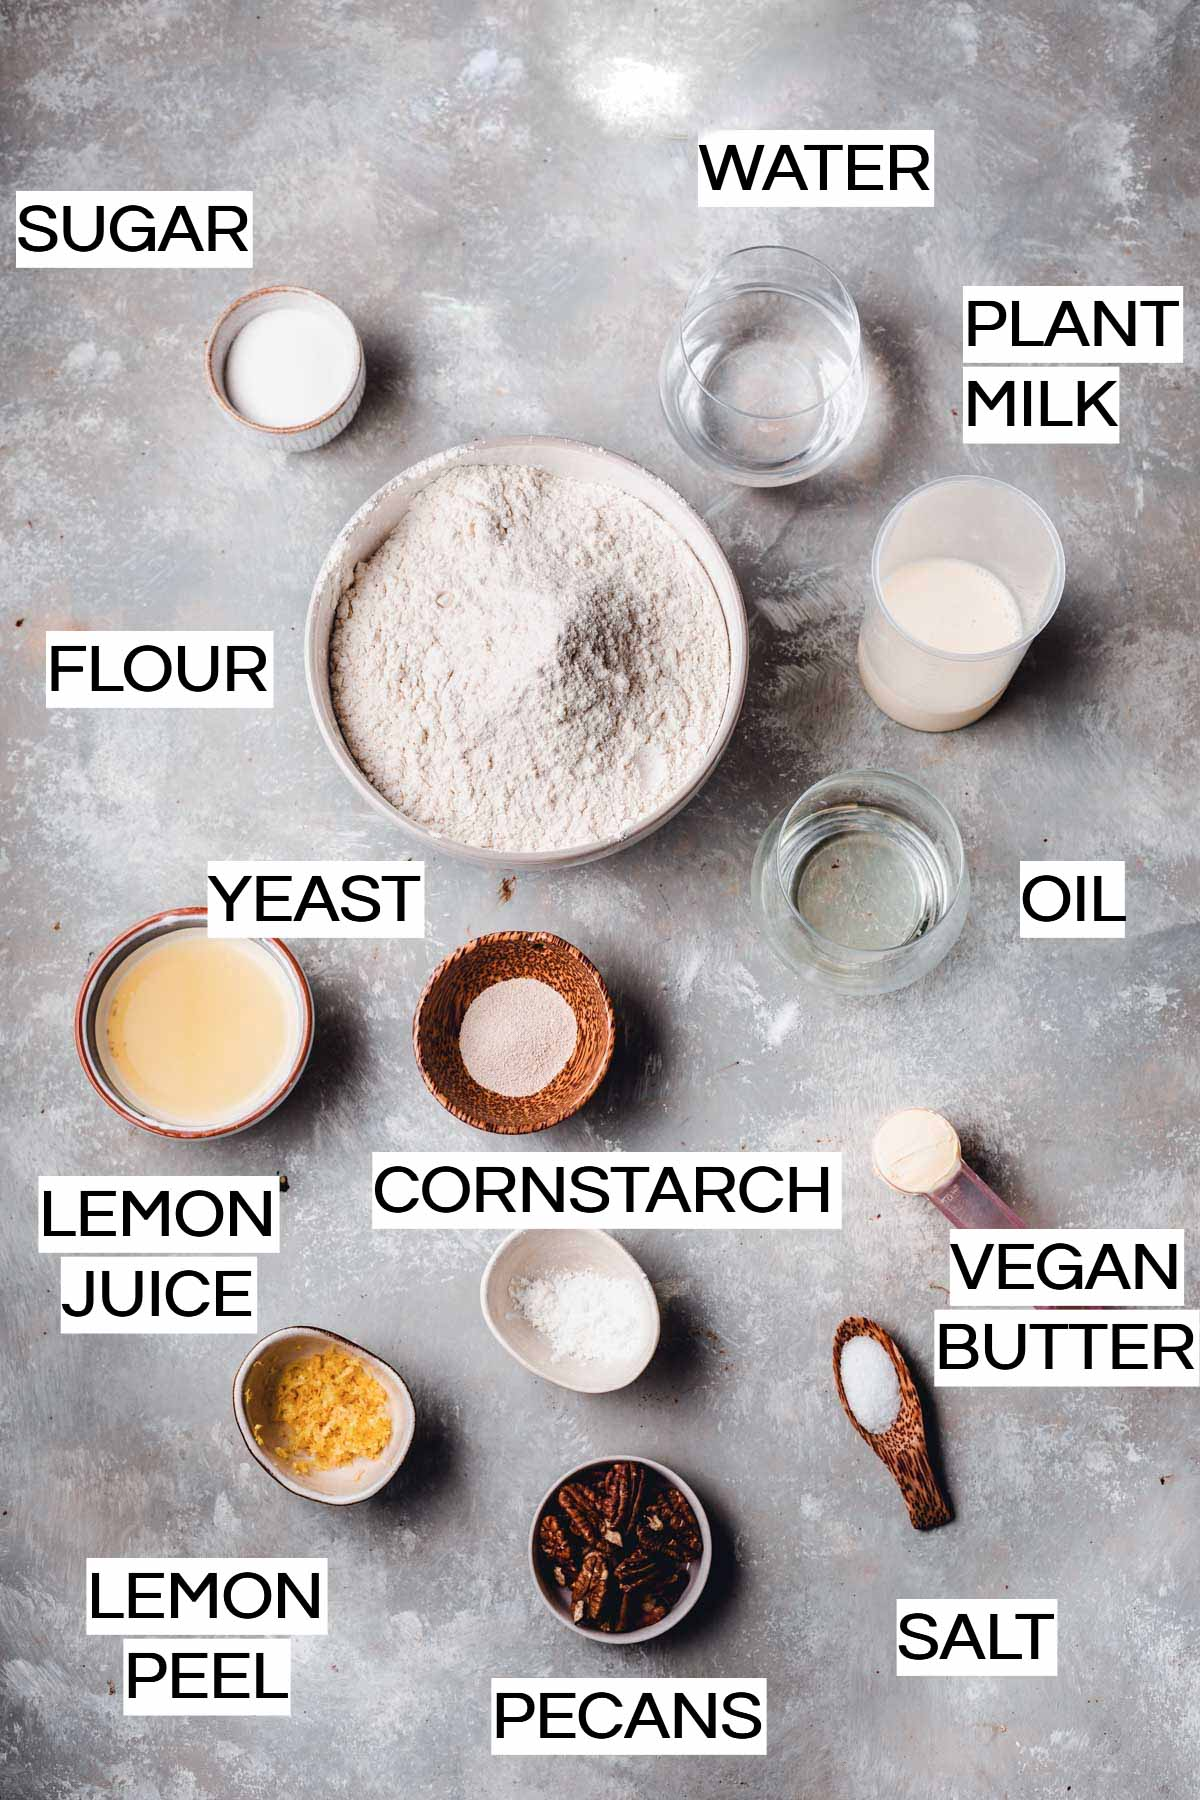 All the ingredients needed to bake vegan rolls laid out on a flat surface